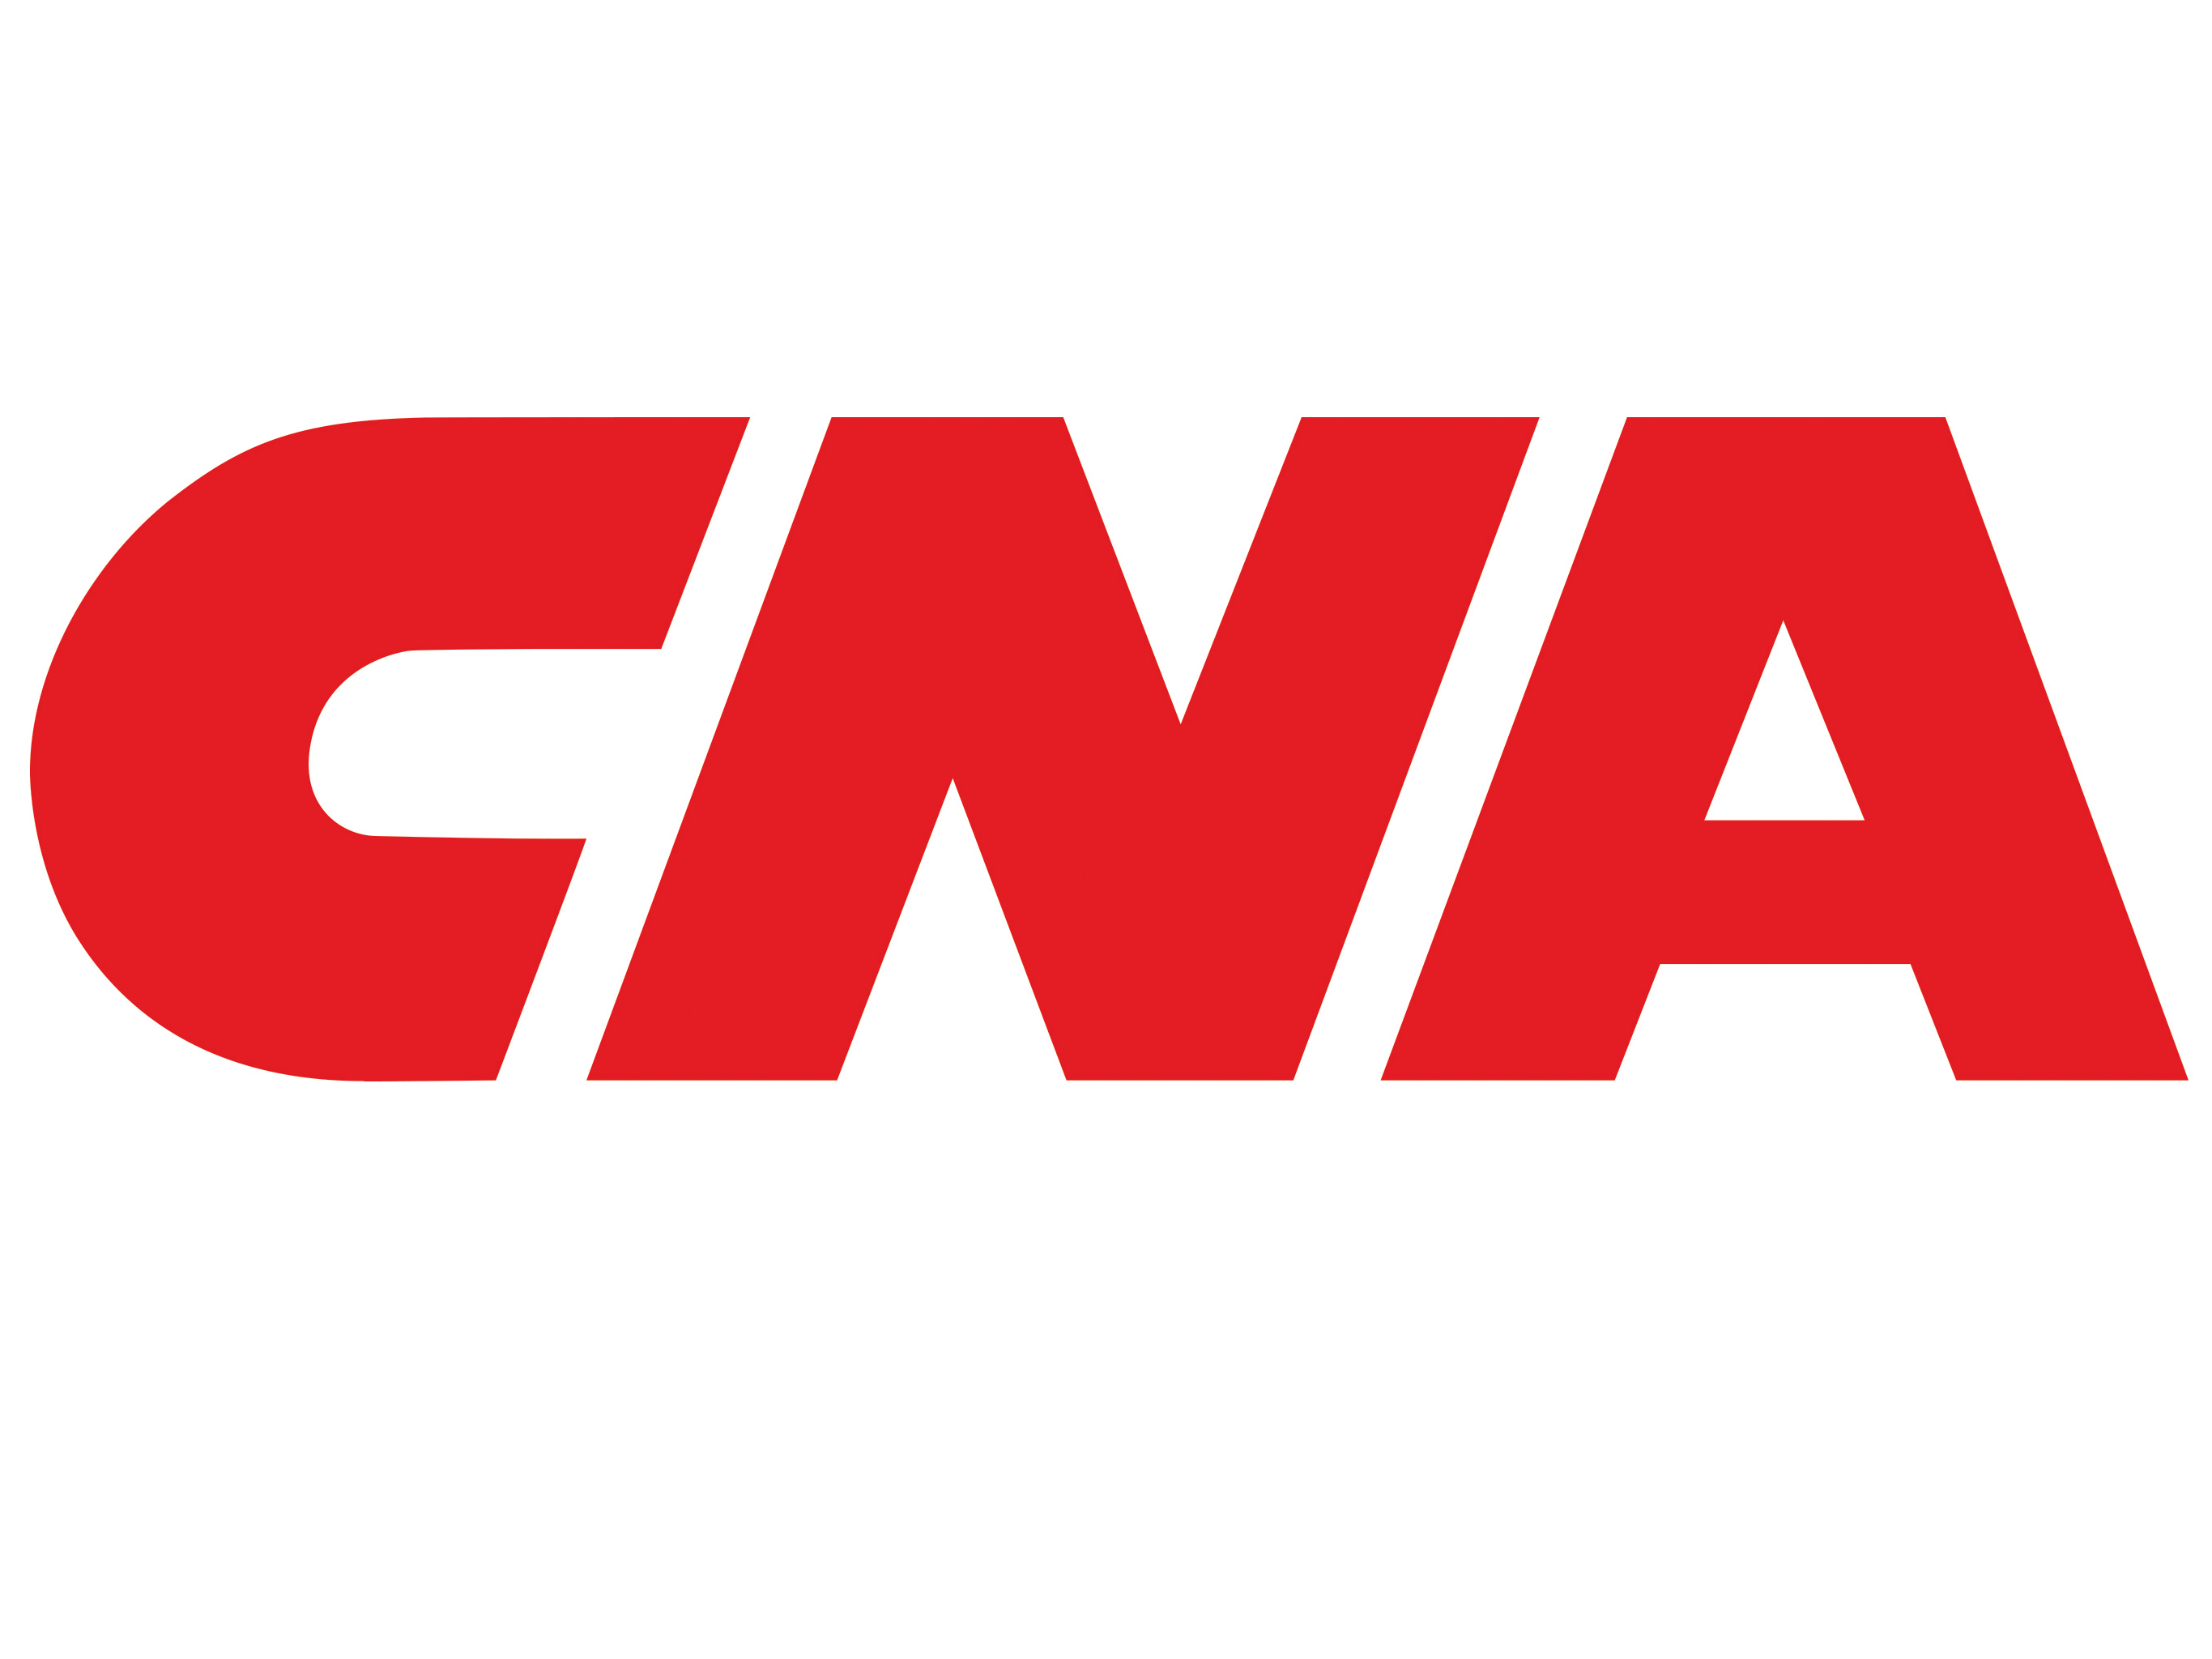 cna brings on ex endurance exec worman as chief underwriting